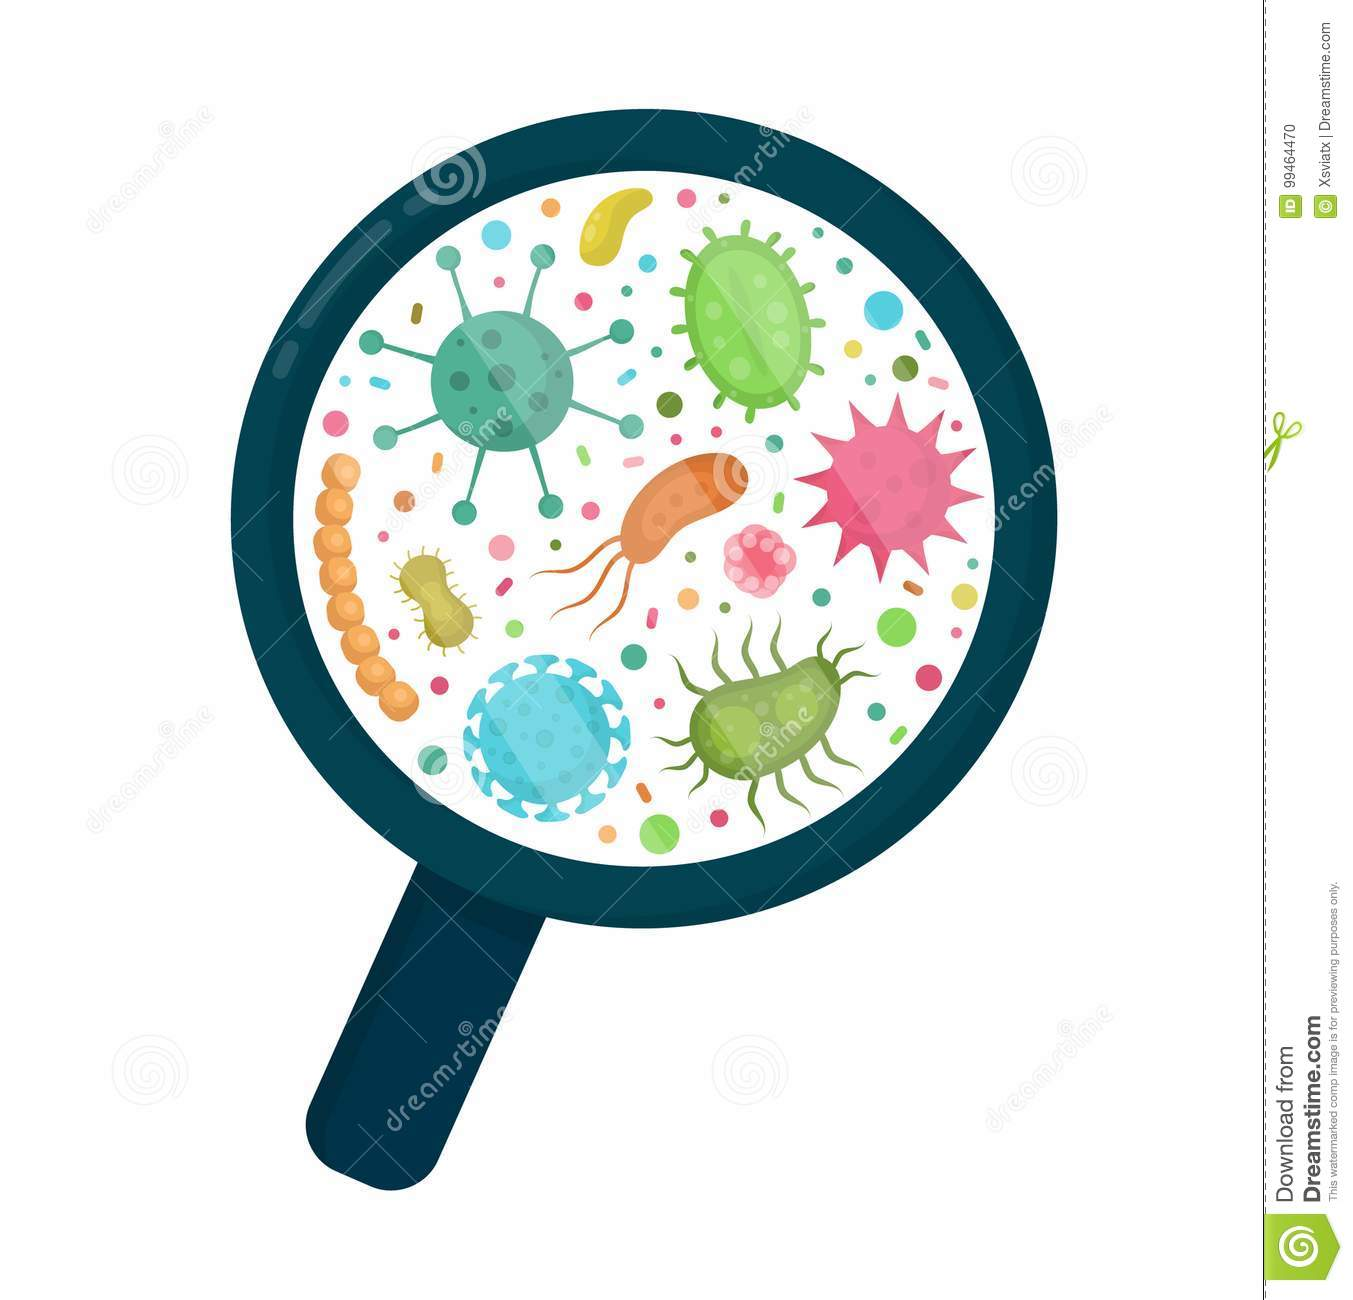 Bacterial Microorganism In A Circle Stock Vector